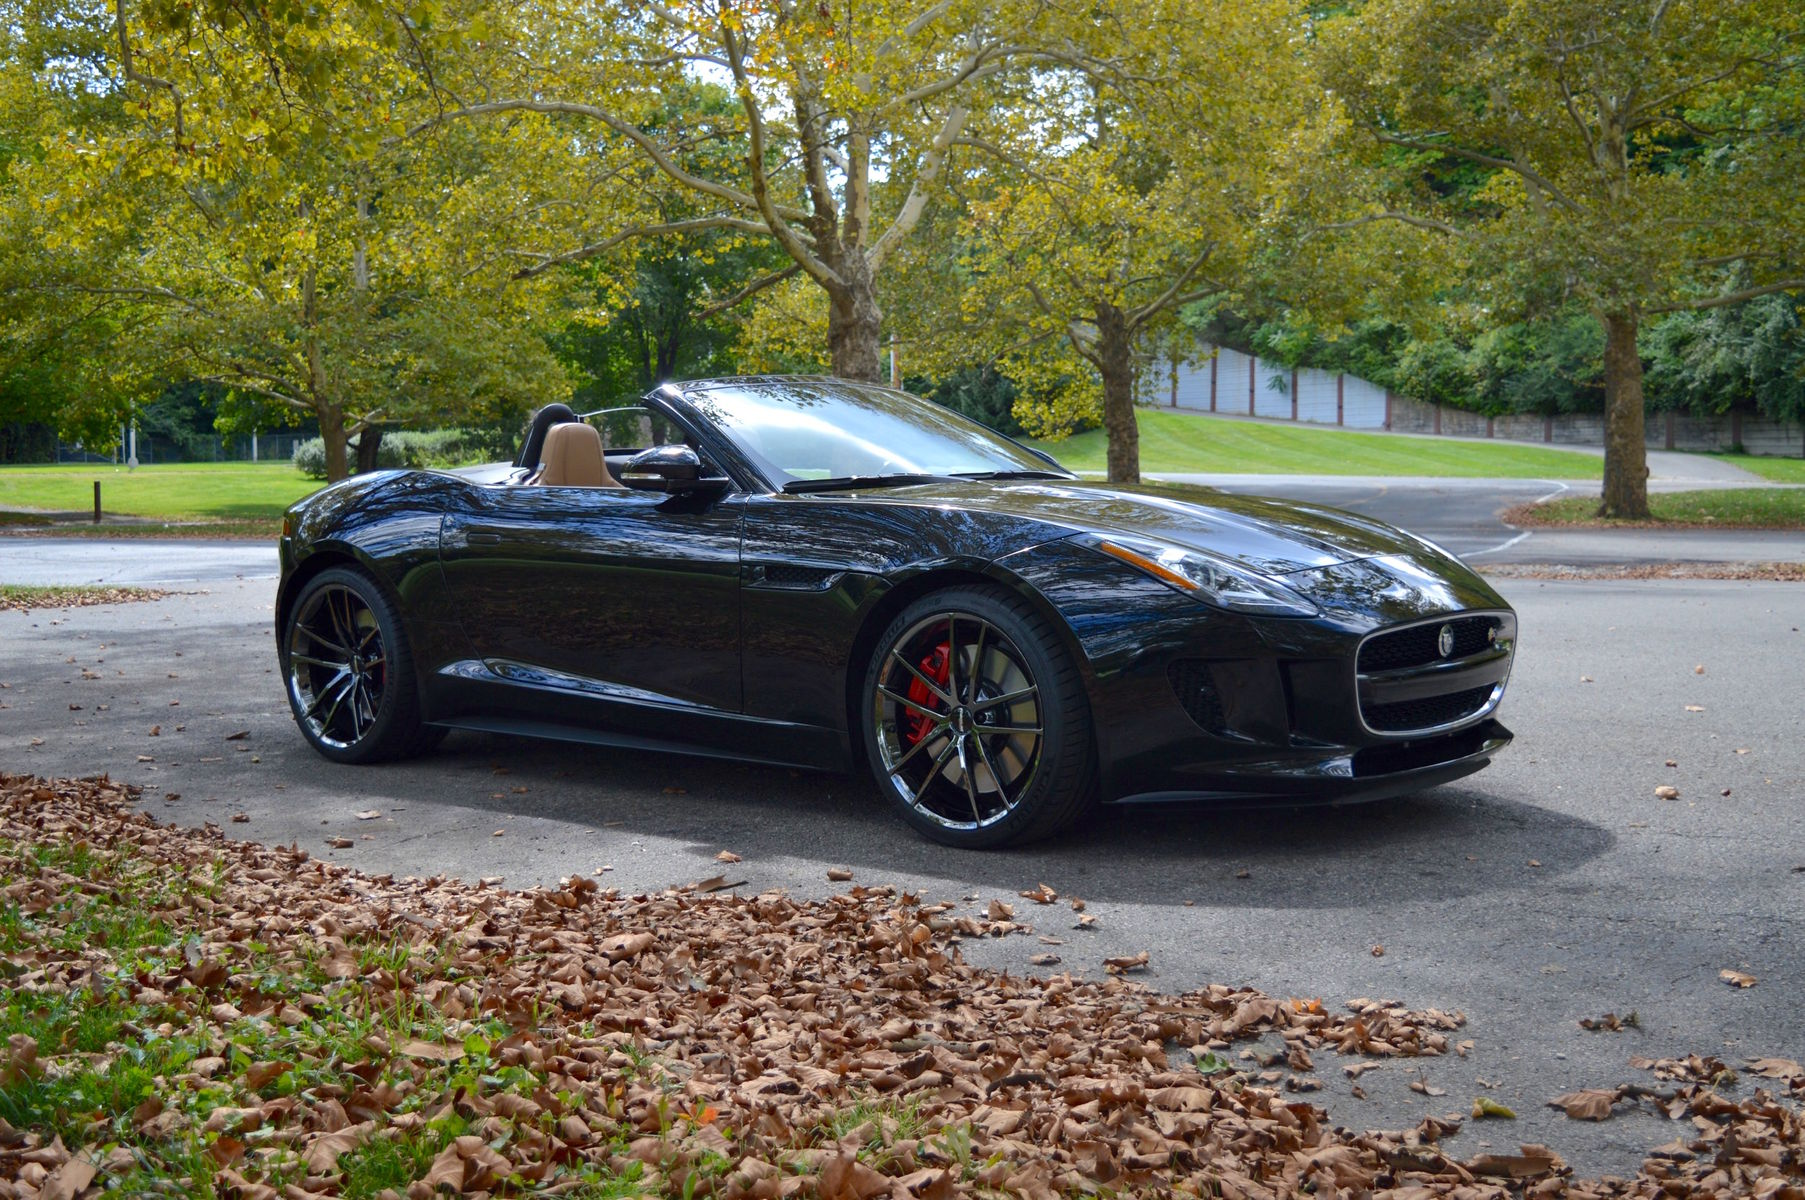 2014 Jaguar F-Type | Dan Warrell's Jaguar F-Type on Forgeline One Piece Forged Monoblock AR1 Wheels